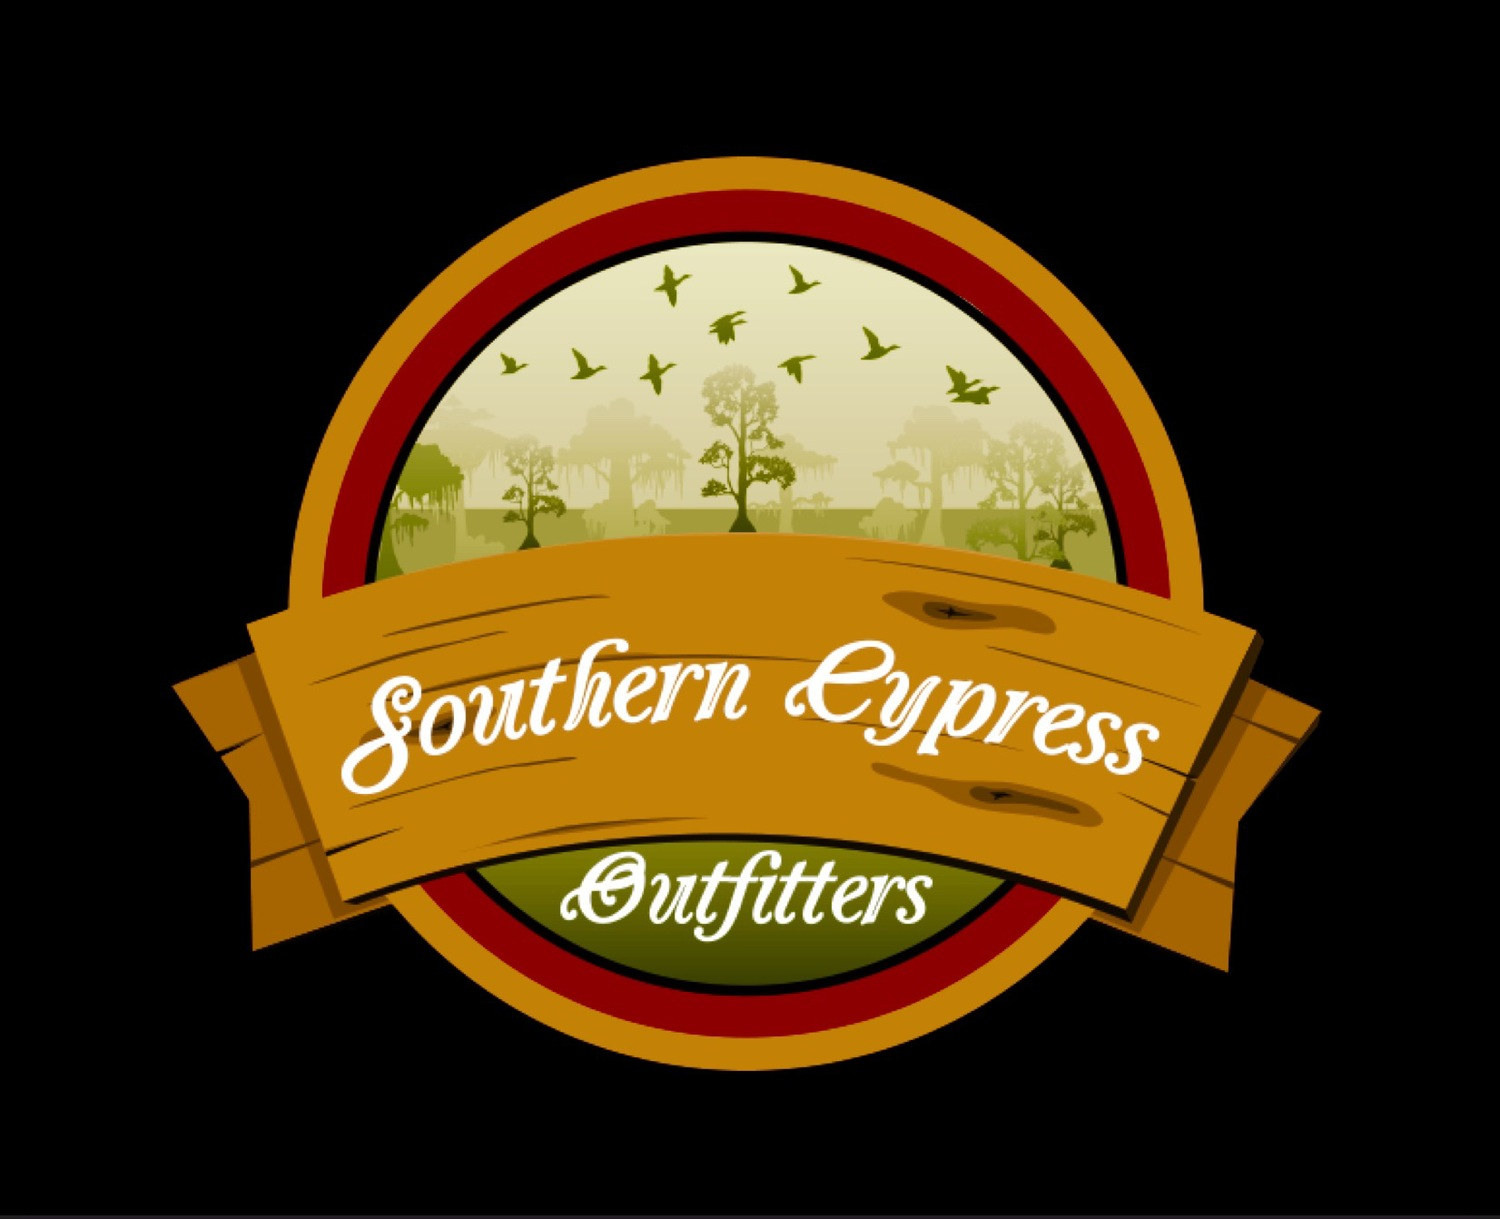 Southern Cypress Outfitters